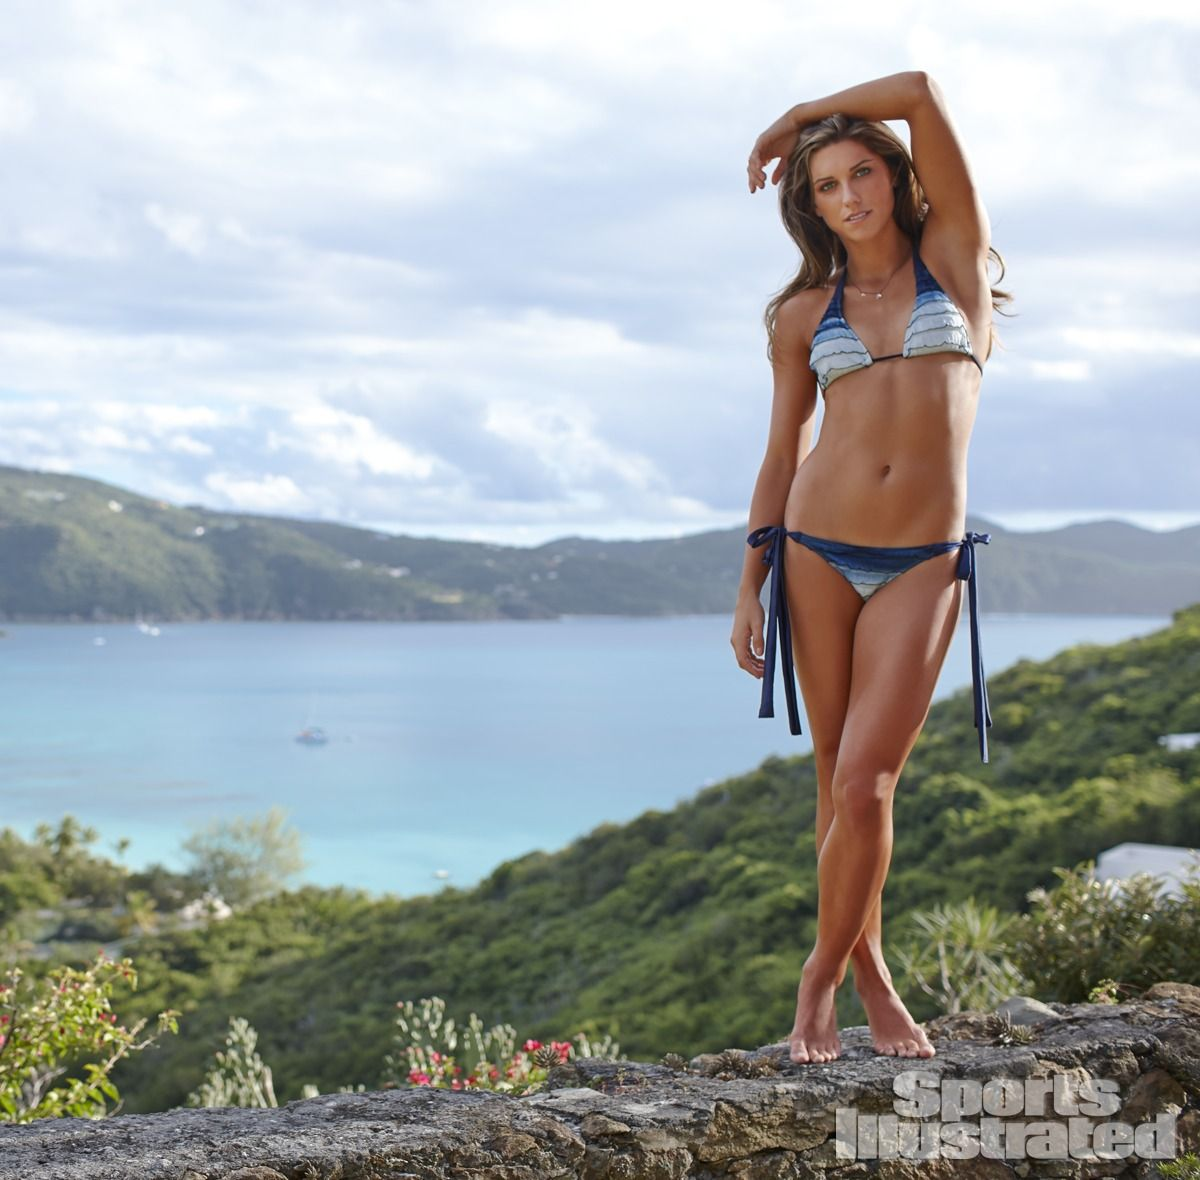 alex-morgan-in-sports-illustrated-2014-swimsuit-issue_13.jpg - 146.03 KB